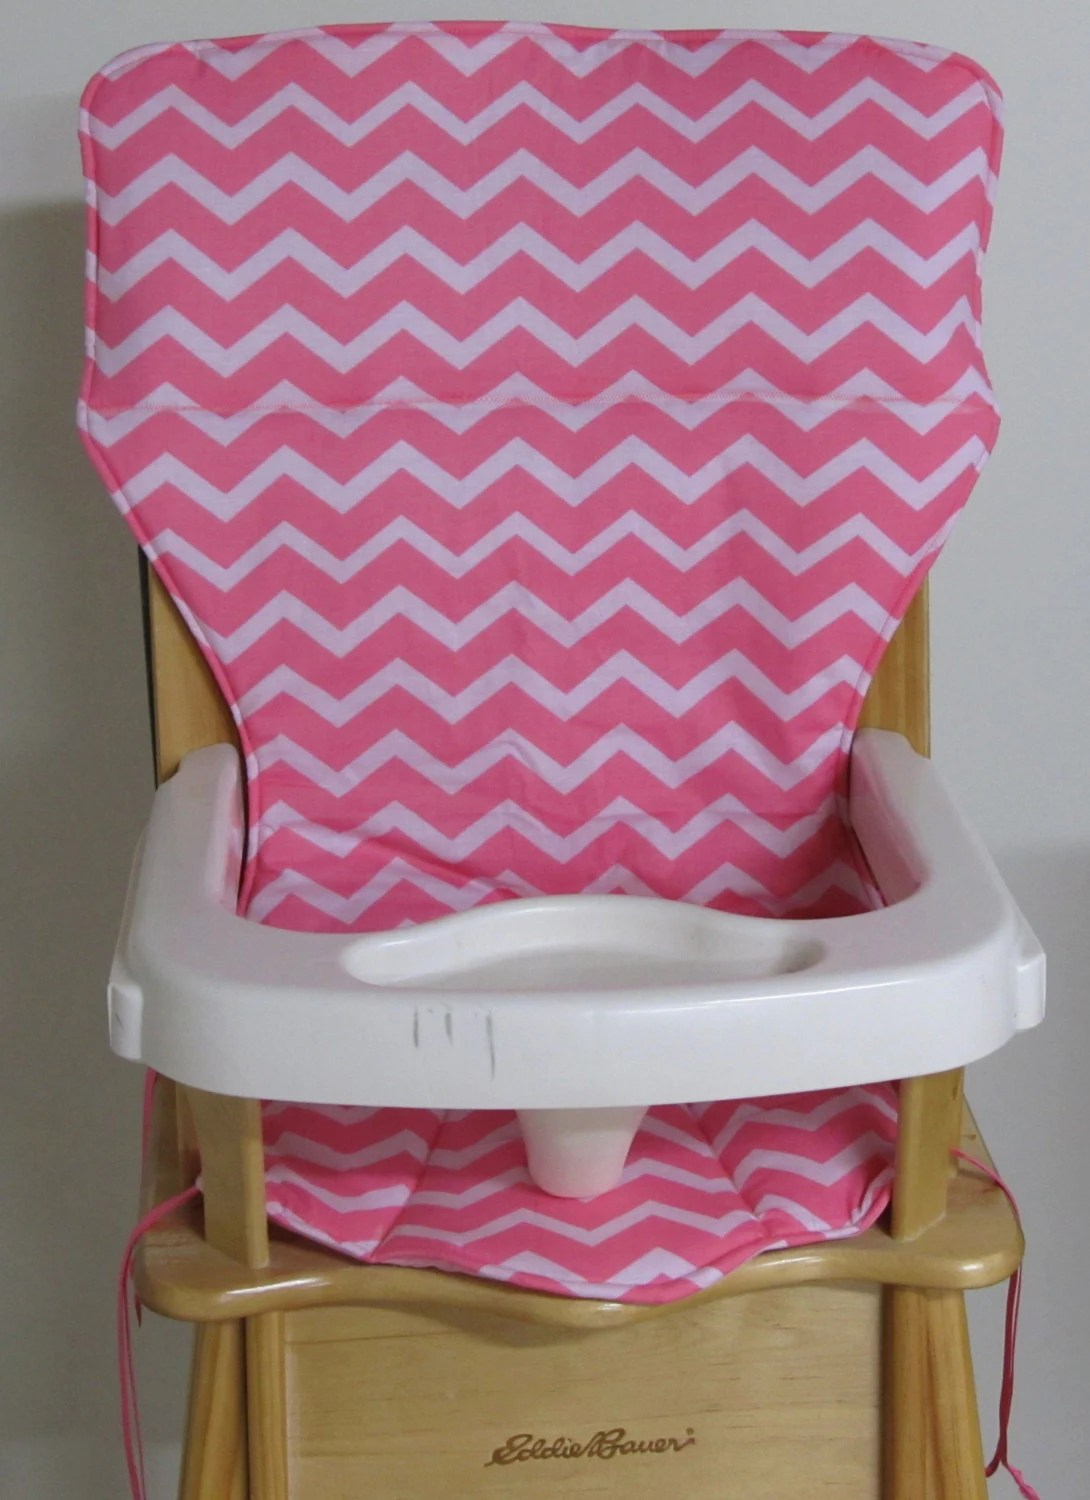 High Chair Covers Eddie Bauer High Chair Pad Replacement Cover Zigzag Coral